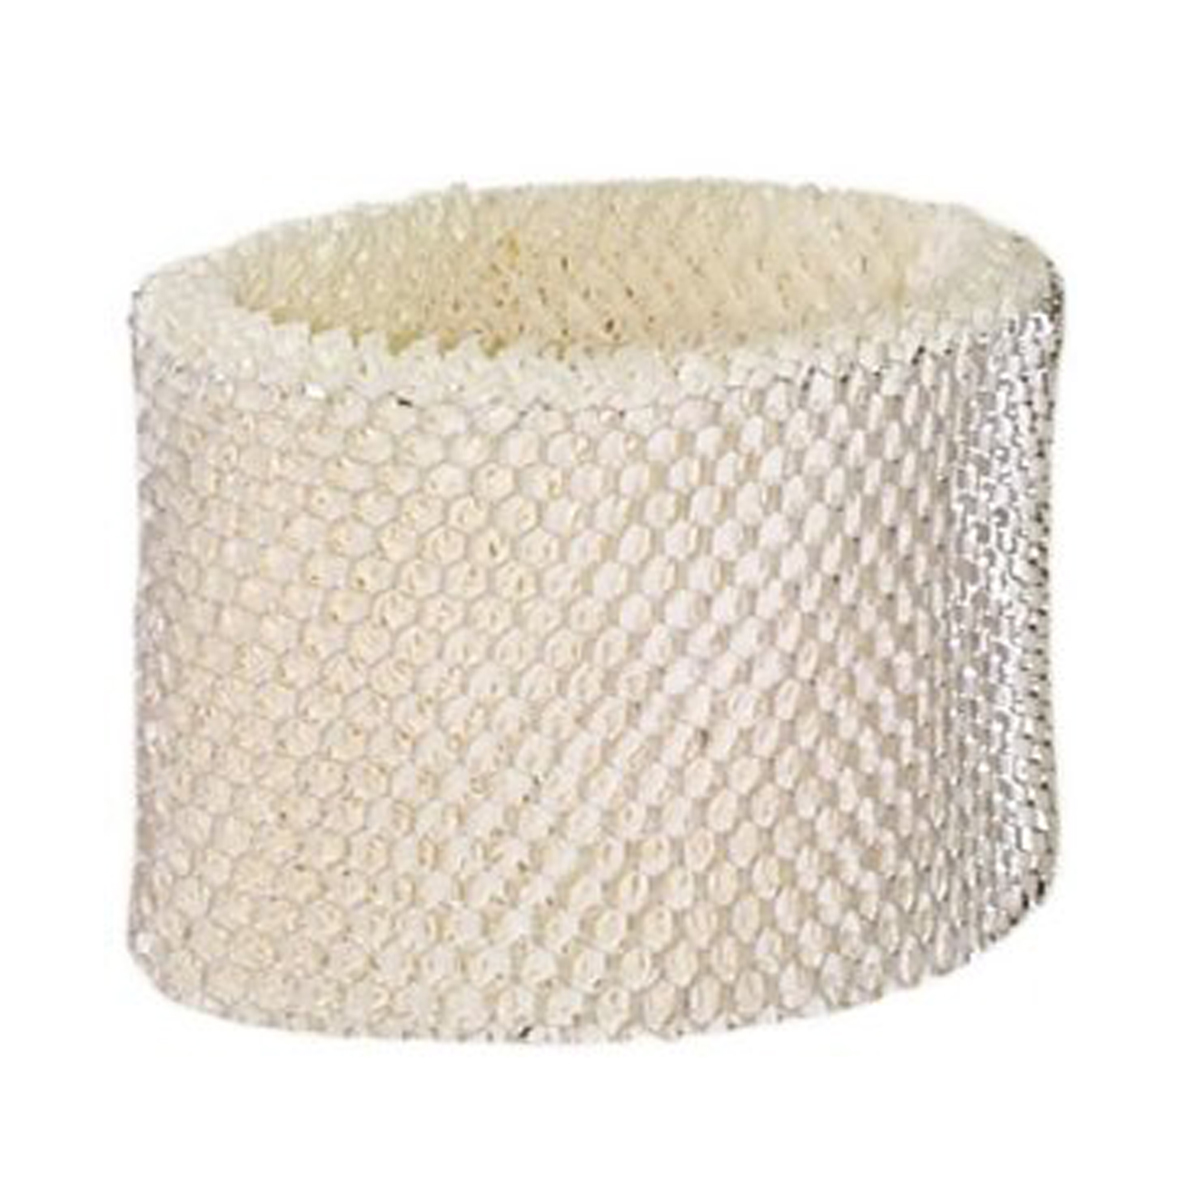 Sunbeam® Cool Mist Humidifier Wick Filter 1173 Sunbeam® Canada #816A4A